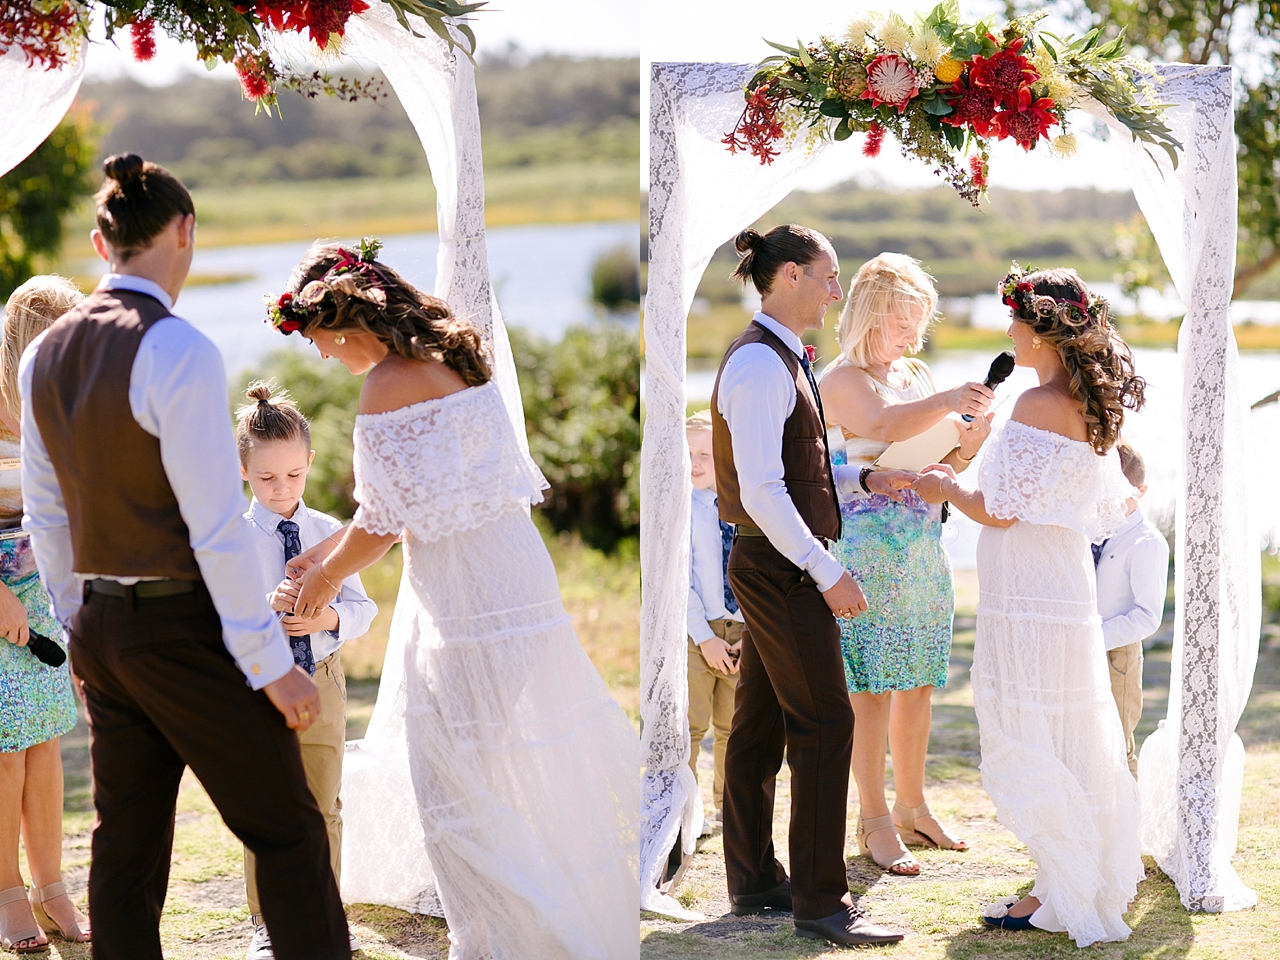 Yanchep_Pop_Up_Wedding_Ceremony_41.jpg